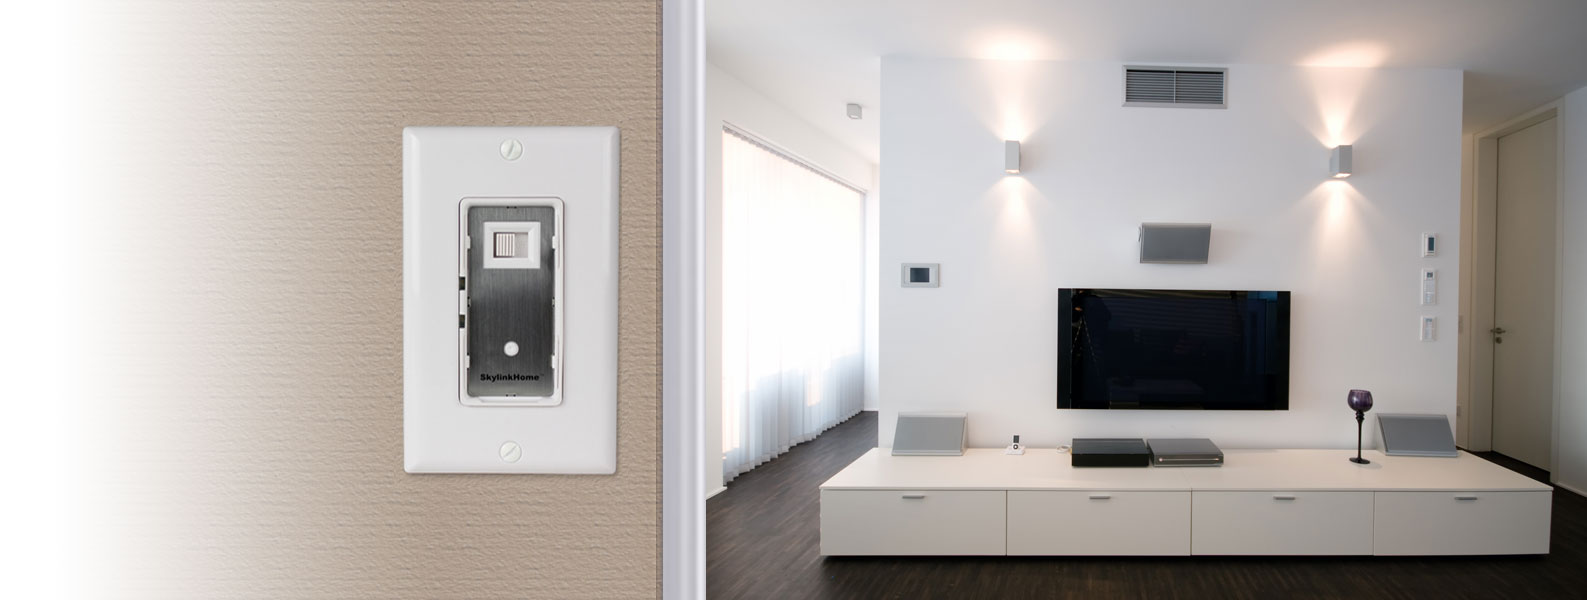 Wall Switch Receivers - Home Automation System Receivers